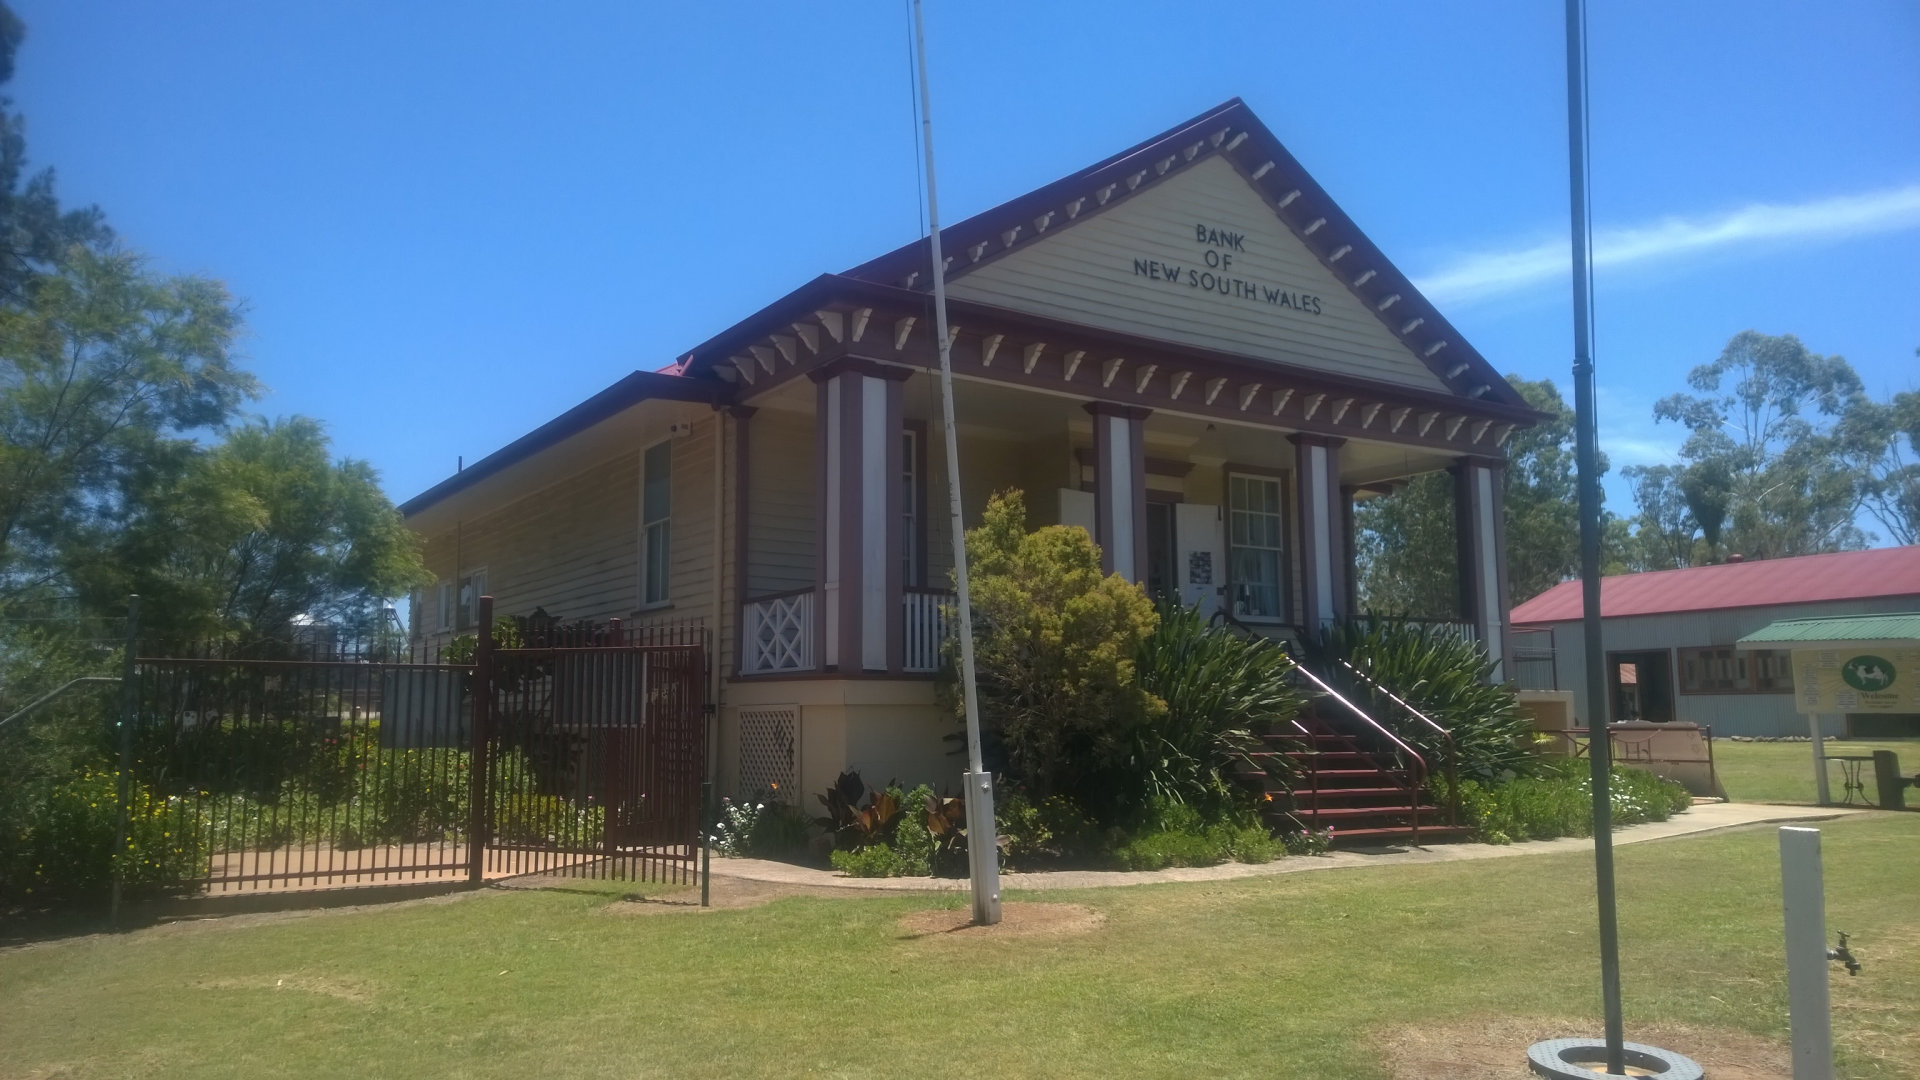 Bank of New South Wales building at The Queensland Dairy & Heritage Museum in Murgon. It has displays on the dairy industry, including memorabilia of the dairy industry, and heritage displays from the local area